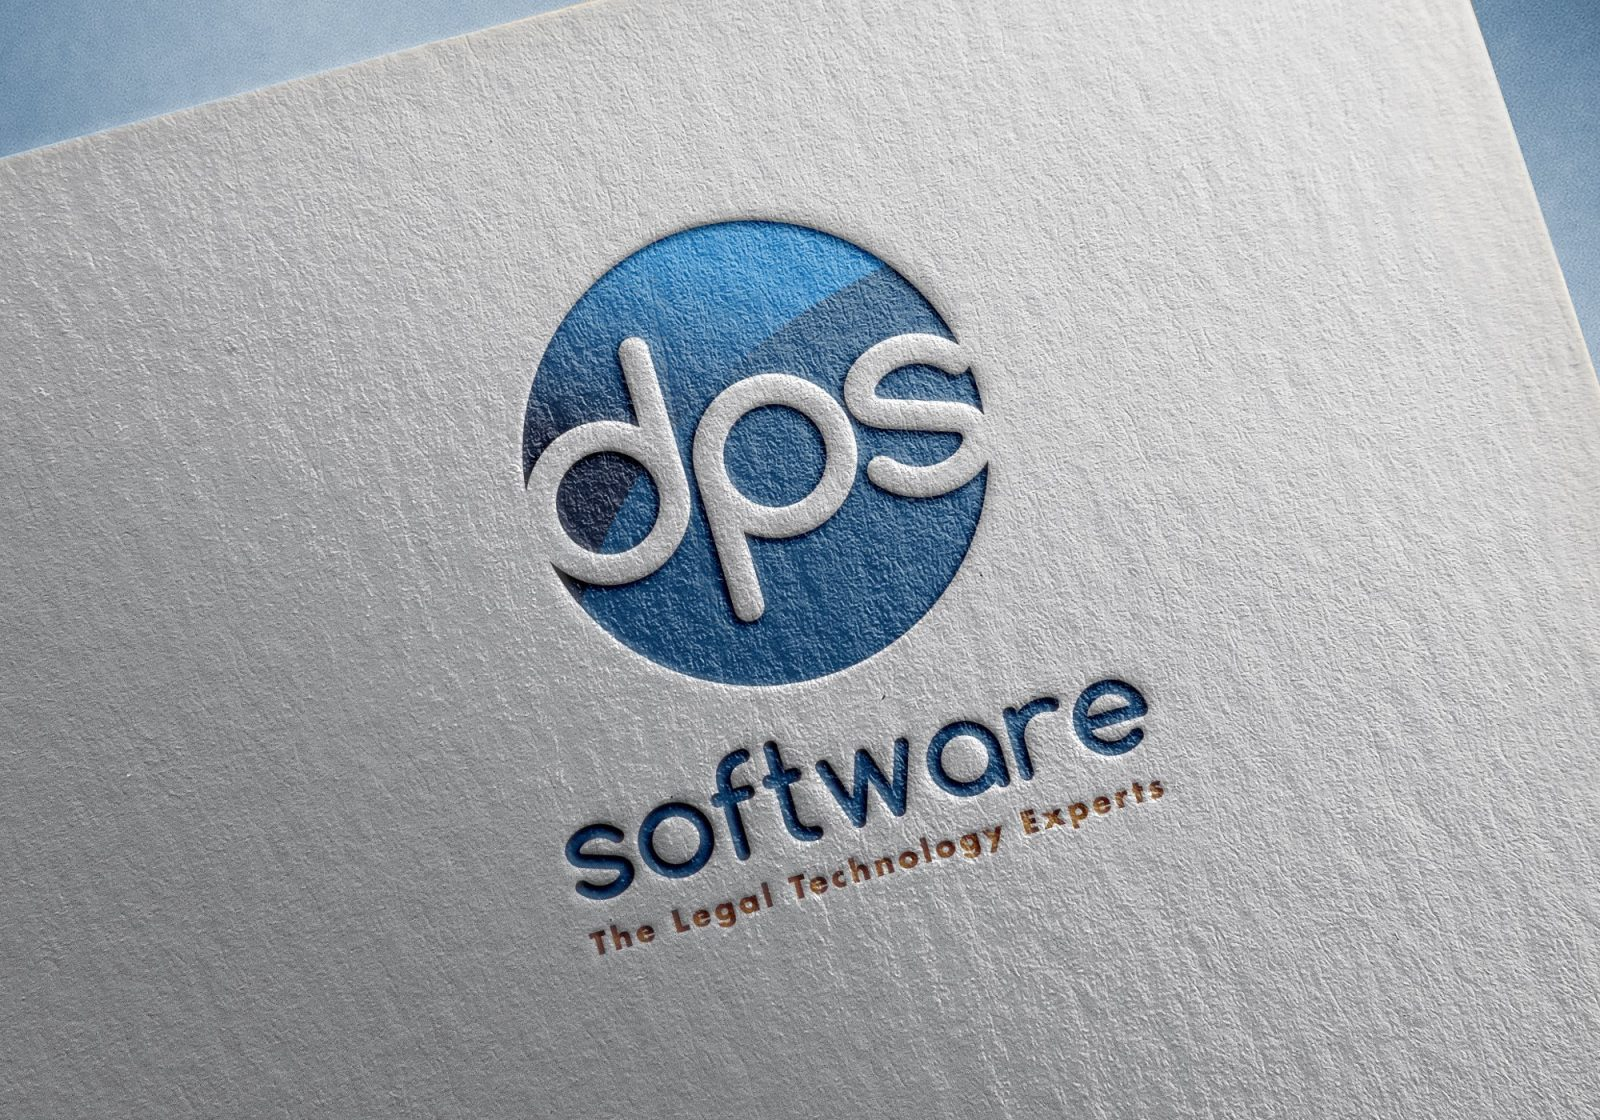 DPS Software's logo on a letterhead